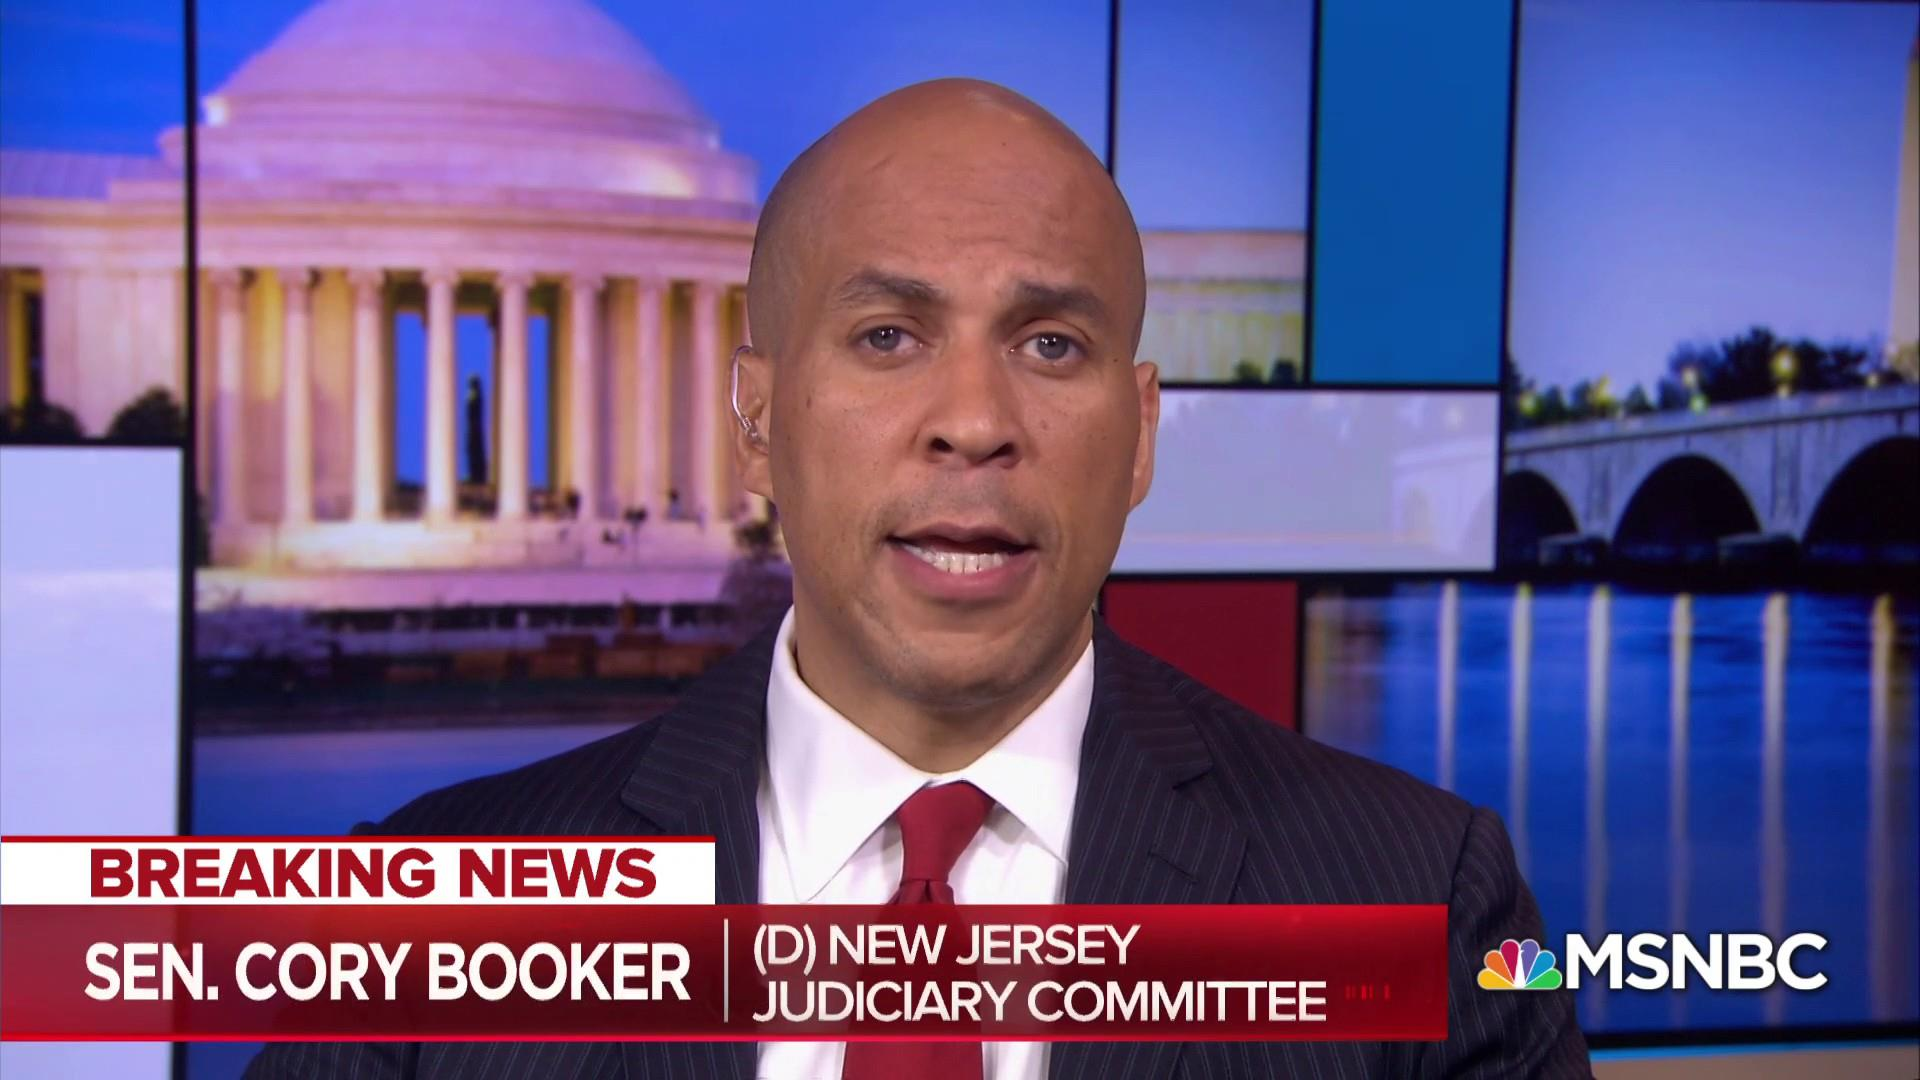 Booker: Hearing showed need for FBI investigation of Kavanaugh